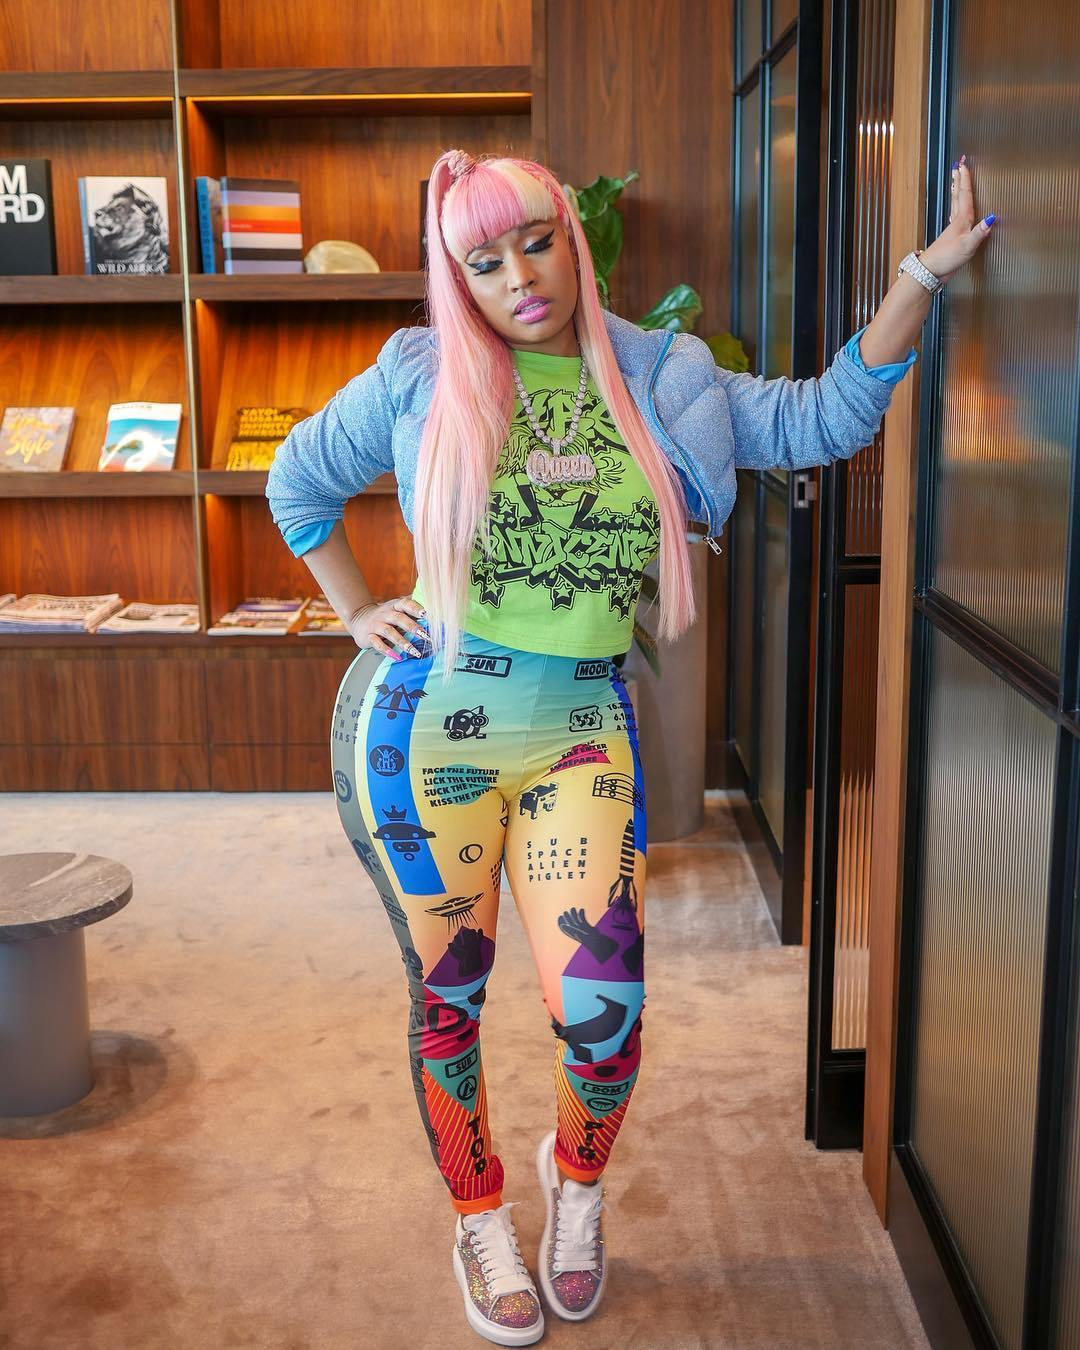 Nicki Minaj – Barbie Drip